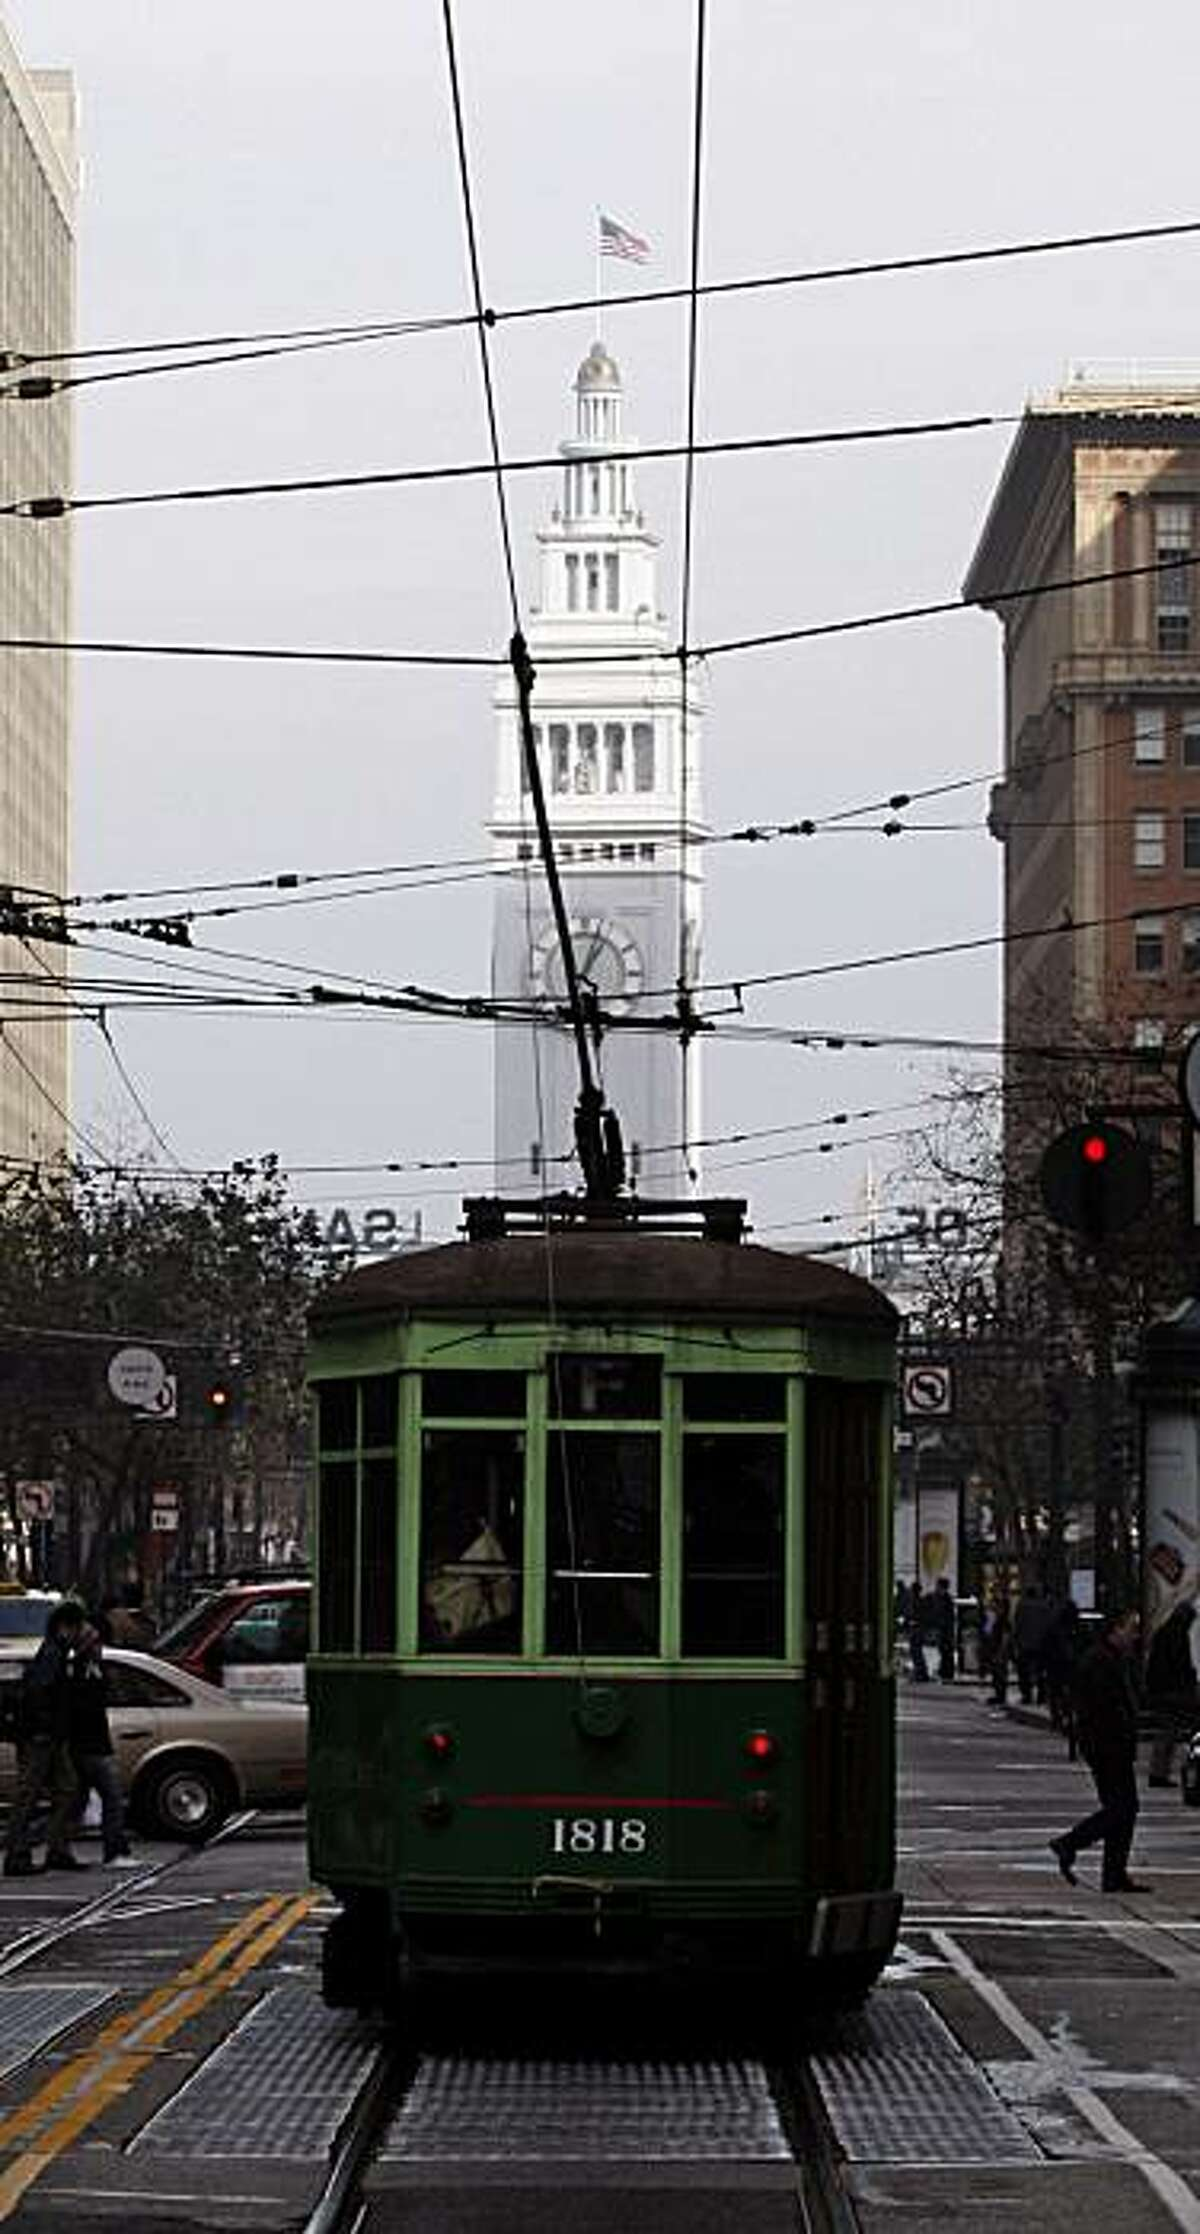 A Muni trolley makes its way down to the Ferry Building on Market Street. San Francisco's Market Street between 5th street and the Ferry Building is full of vitality and considered by most to the one of the main arteries of the city. Jan. 7, 2010